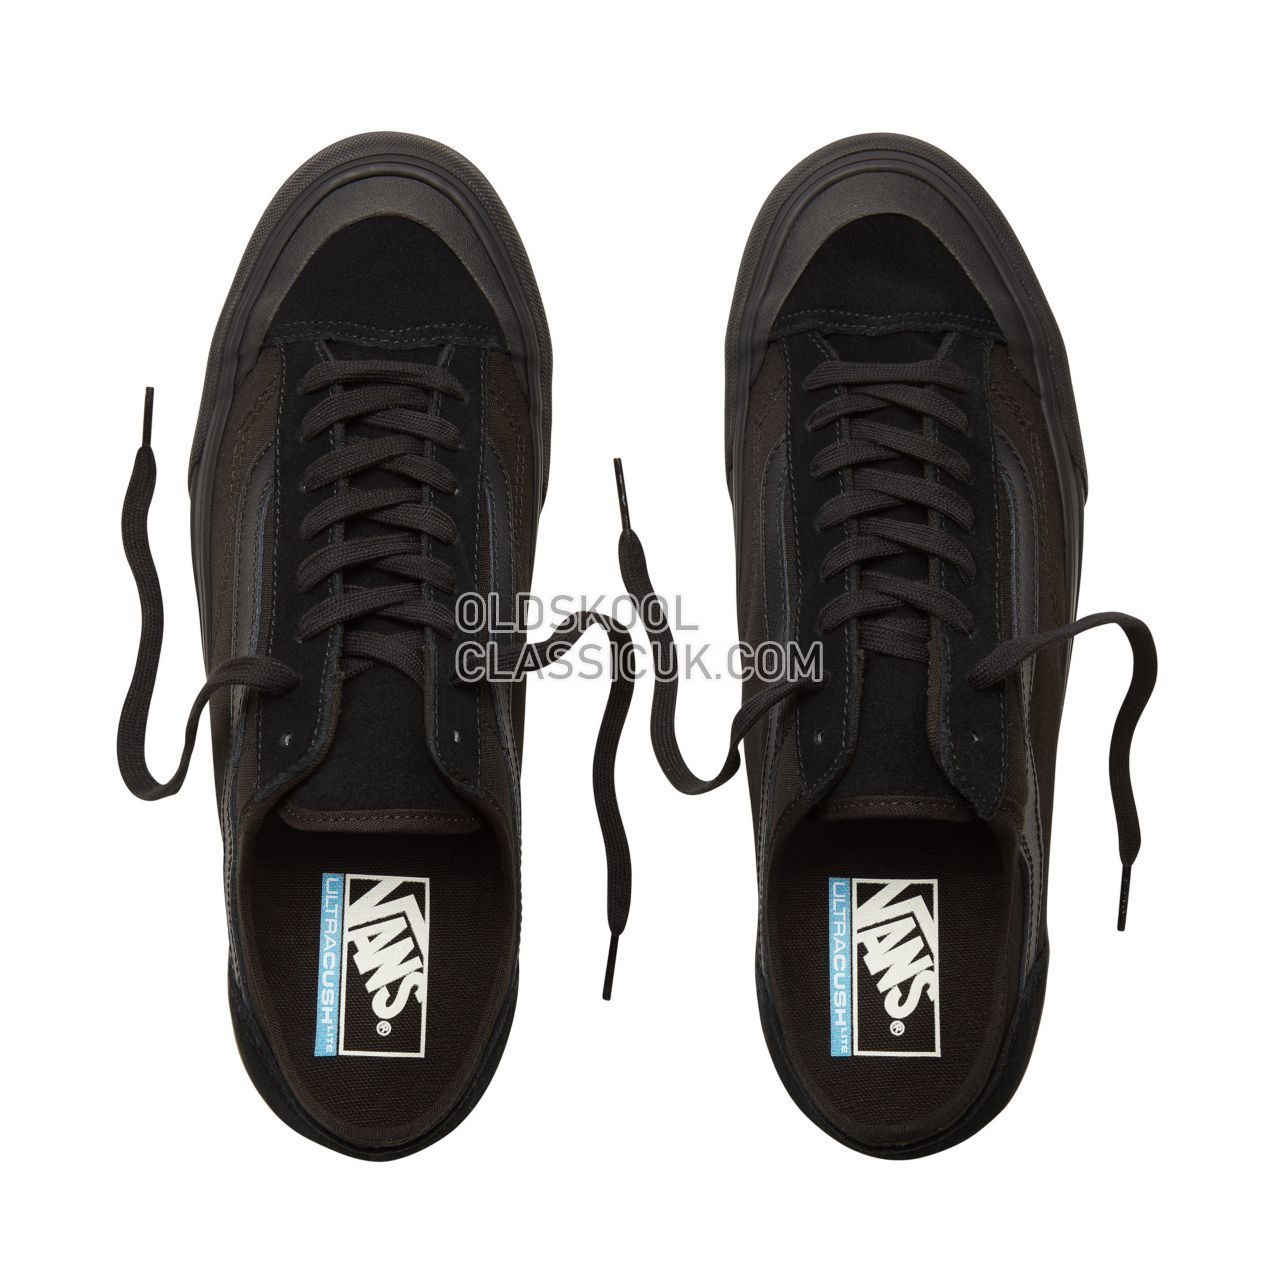 Vans Style 36 Decon SF Sneakers Mens Black/Black VA3MVLBKA Shoes